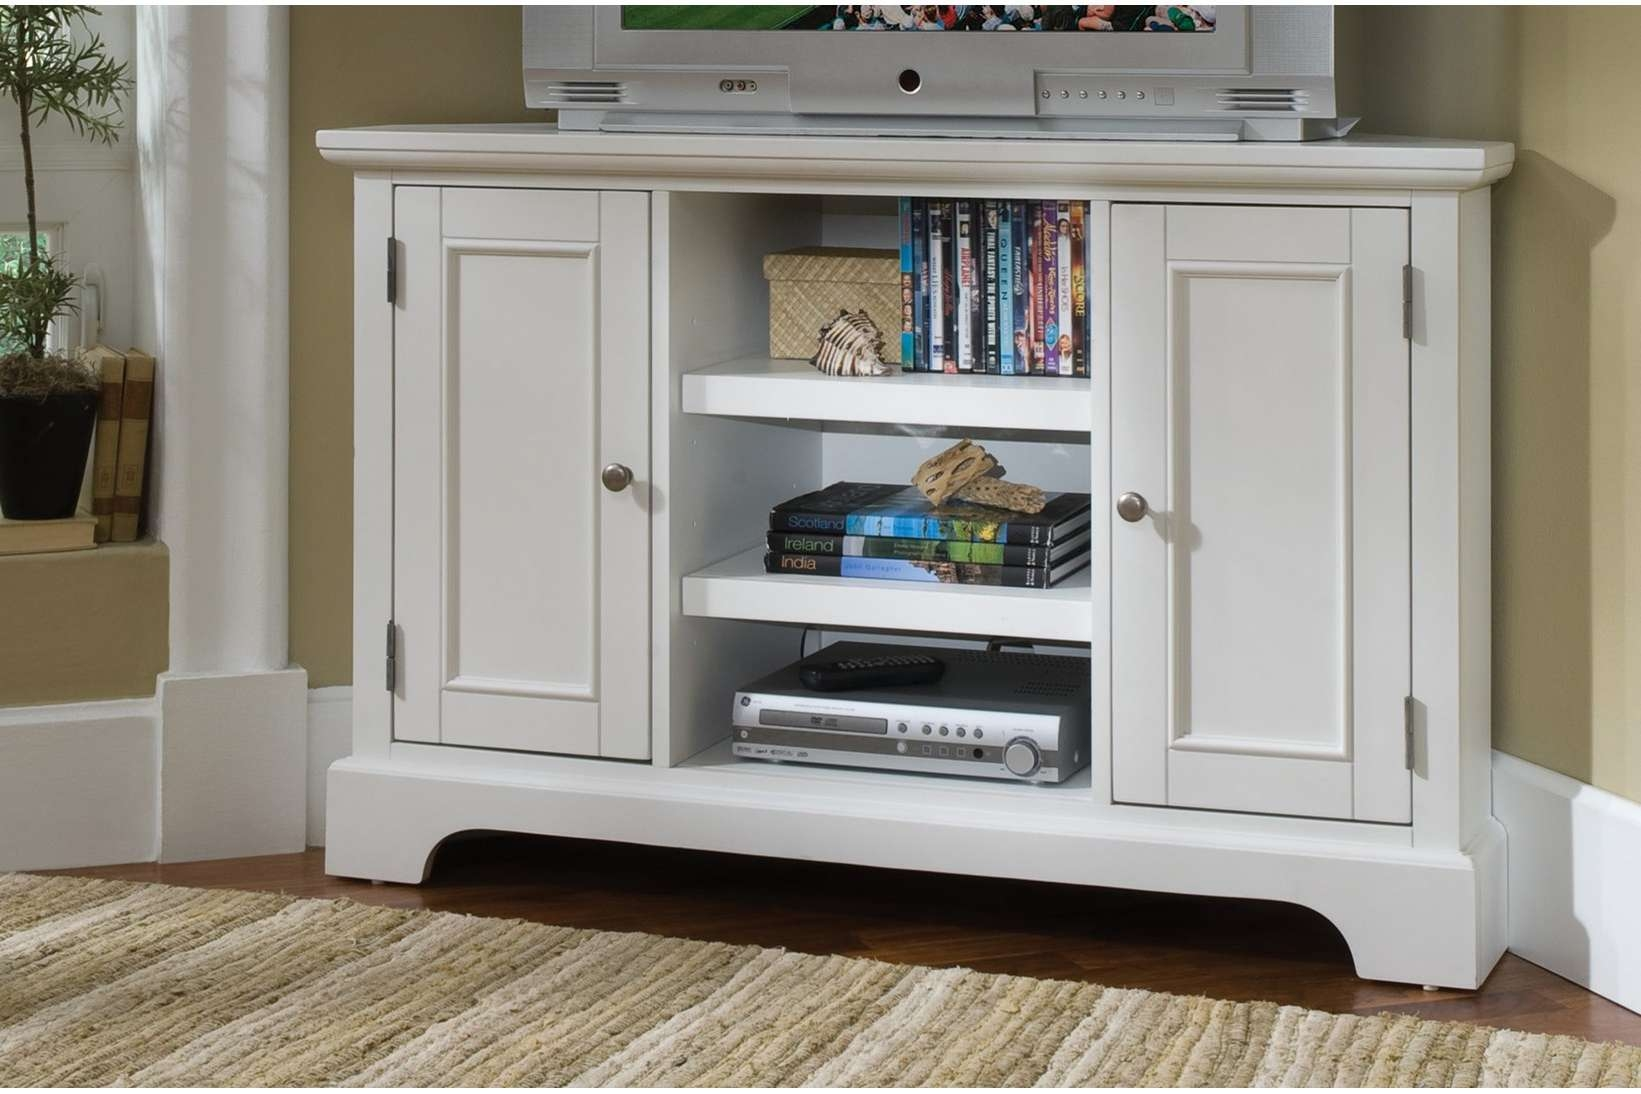 White Corner Tv Cabinet With 2 Doors On Both Sides And 3 Open Regarding Corner Tv Cabinets For Flat Screen (View 17 of 20)